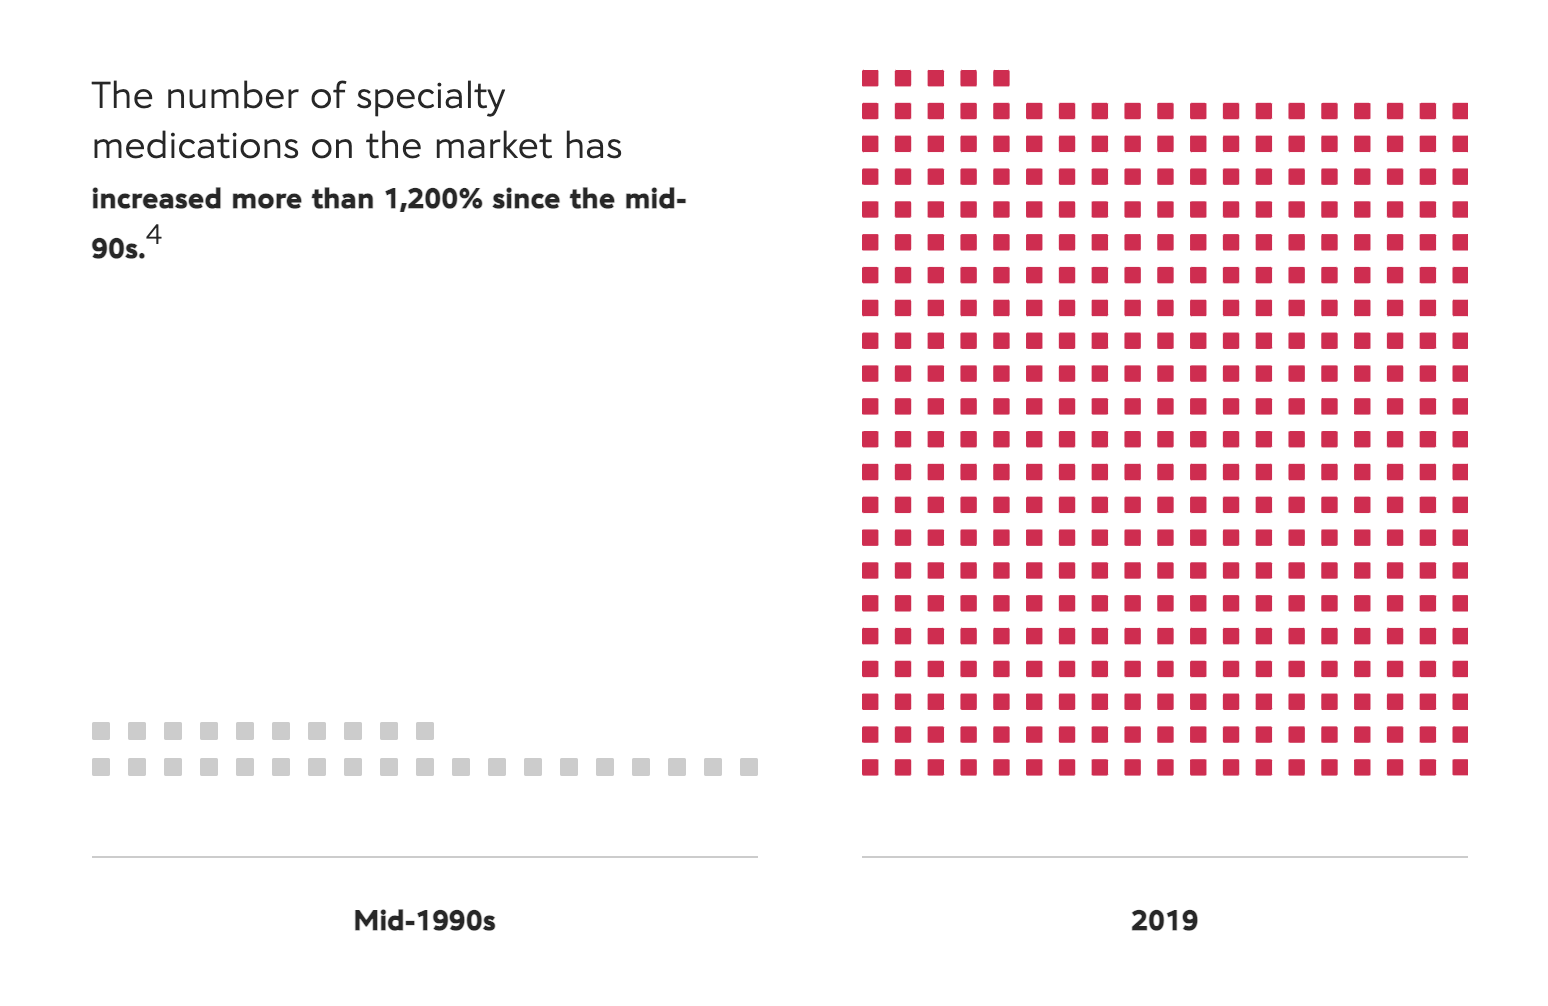 number of specialty medications on the market has increased more than 1,200 percent since mid-90s